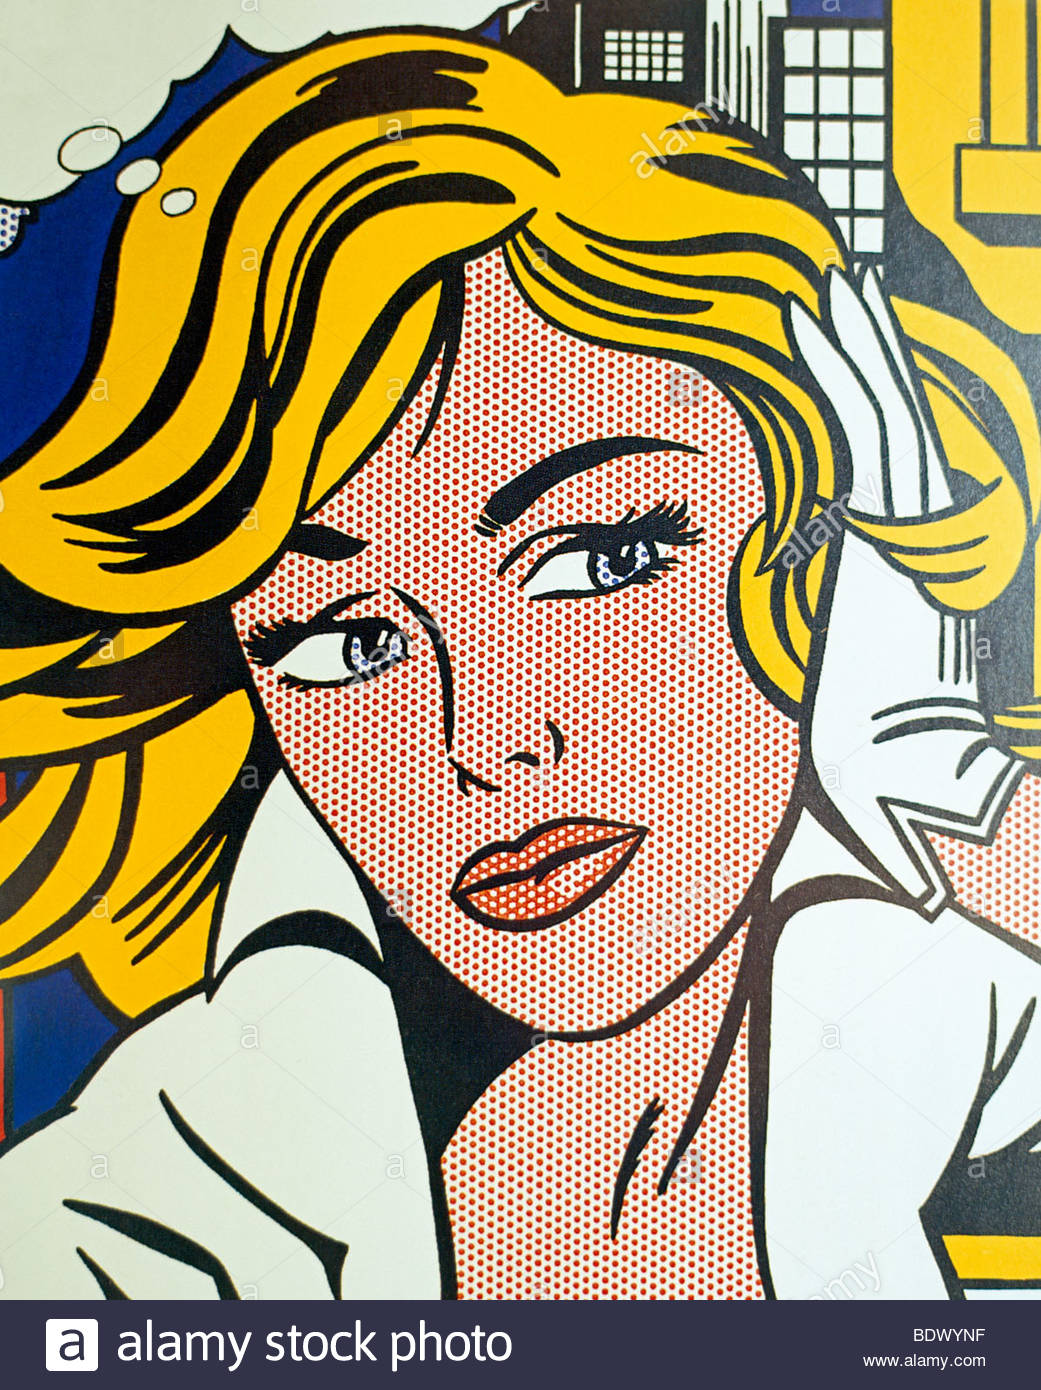 A section from artist Roy Lichtenstein's M-Maybe (A Girl's Picture) dated 1965. - Stock Image